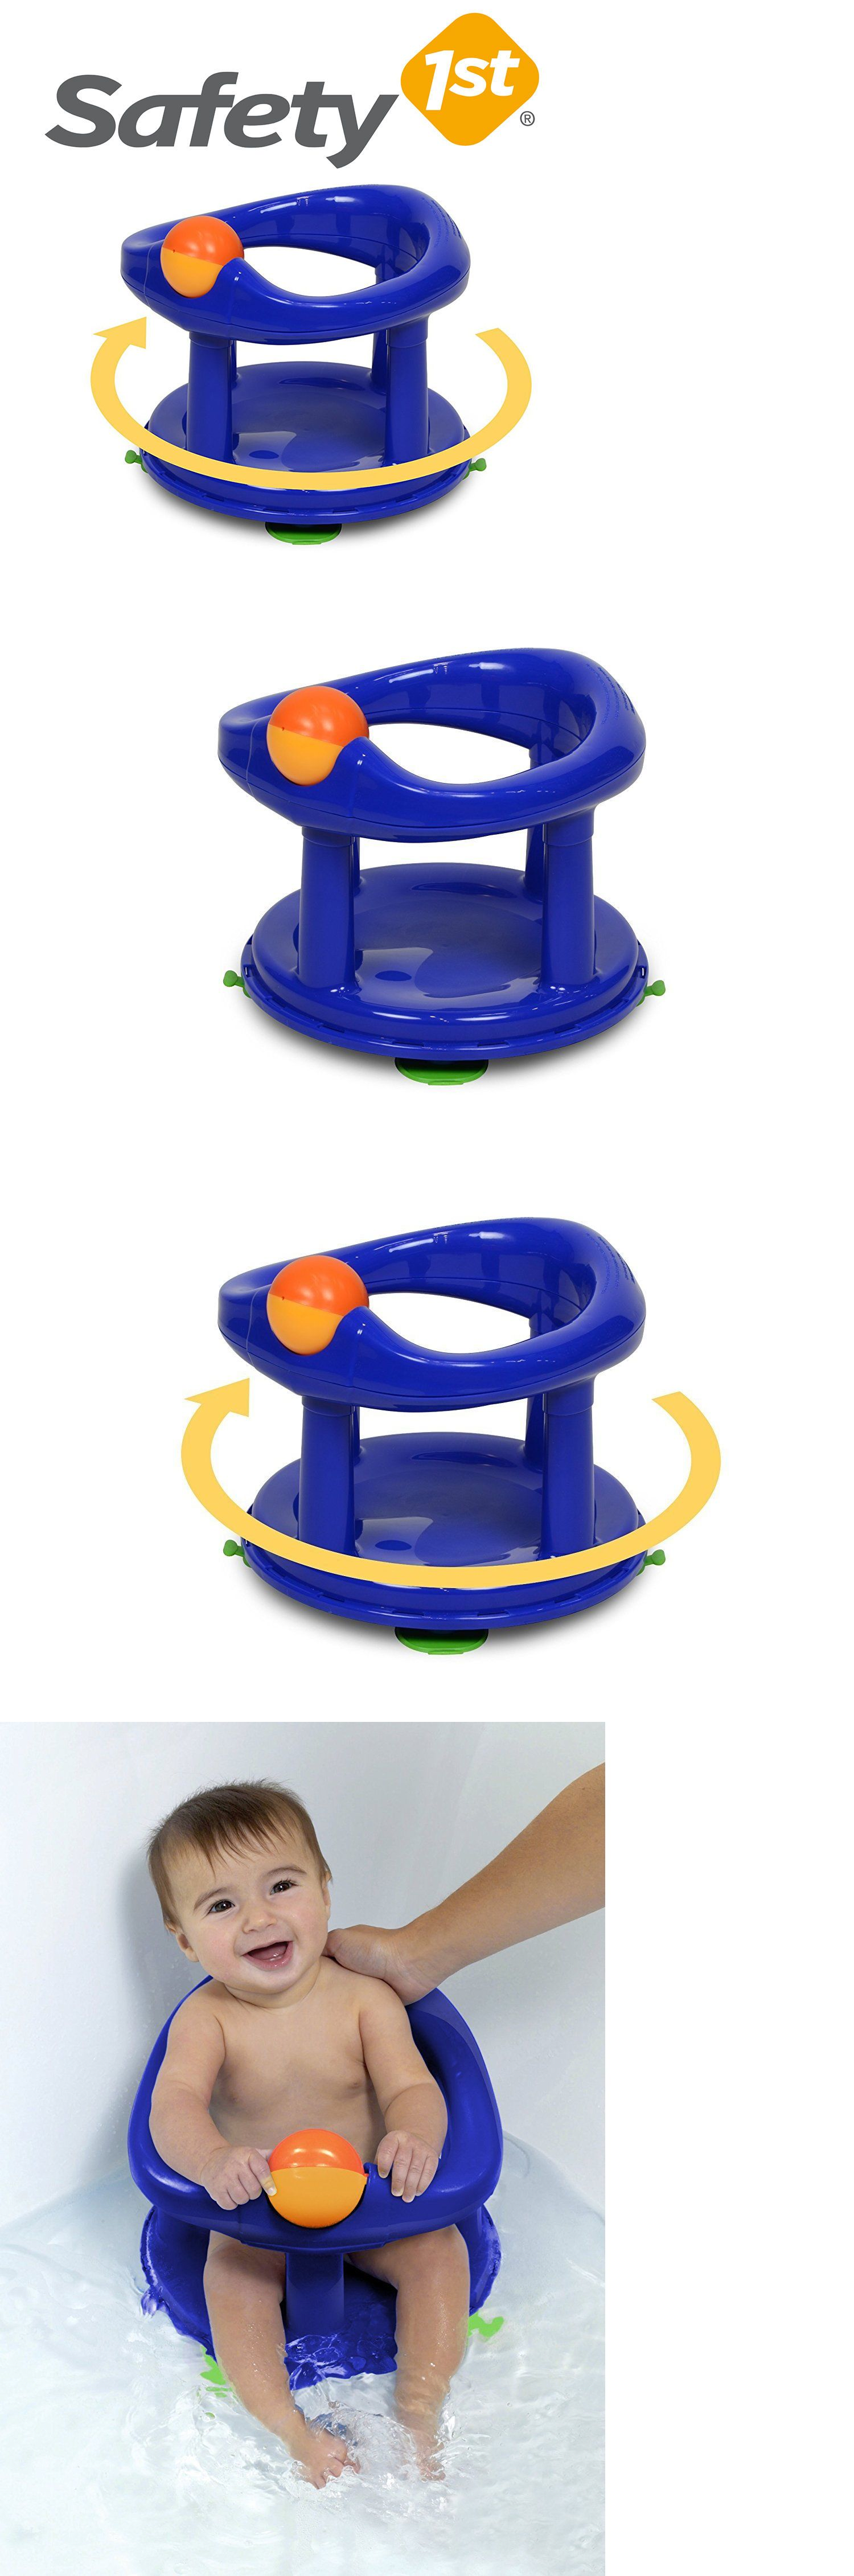 Safety First Swivel Baby Bath Rotating Ring Seat Bathtub Safety 1st ...